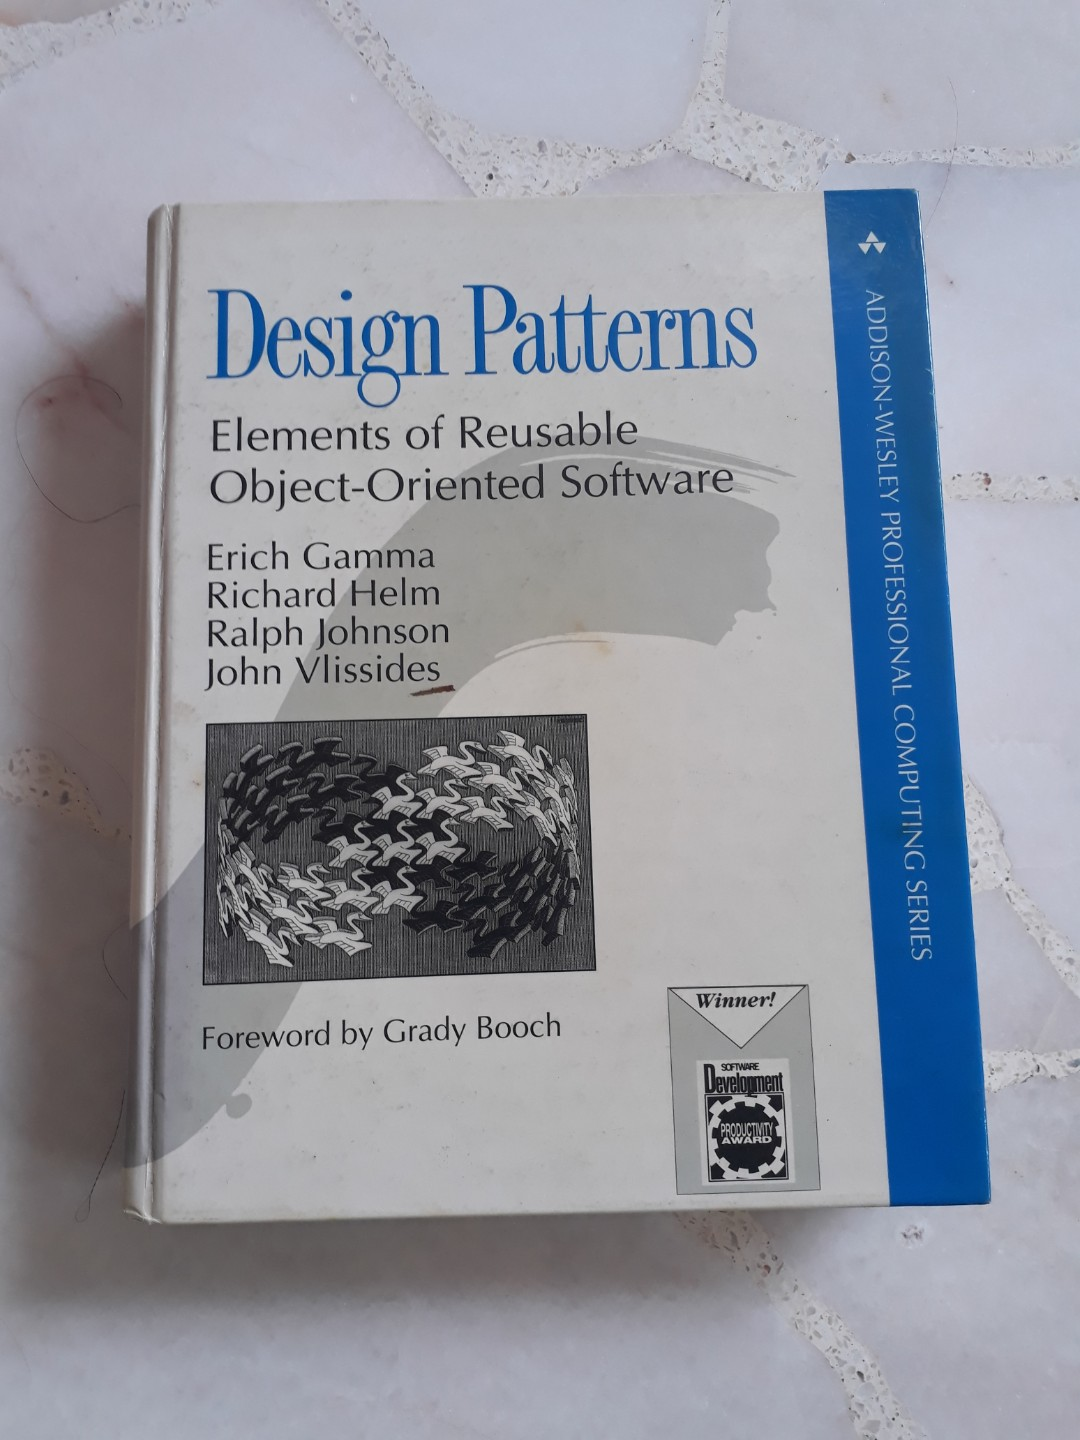 Design Patterns Elements Of Reusable Object Oriented Software Addison Wesley Erich Gamma Richard Helm Ralph Johnson John Vlissides Books Stationery Textbooks Professional Studies On Carousell